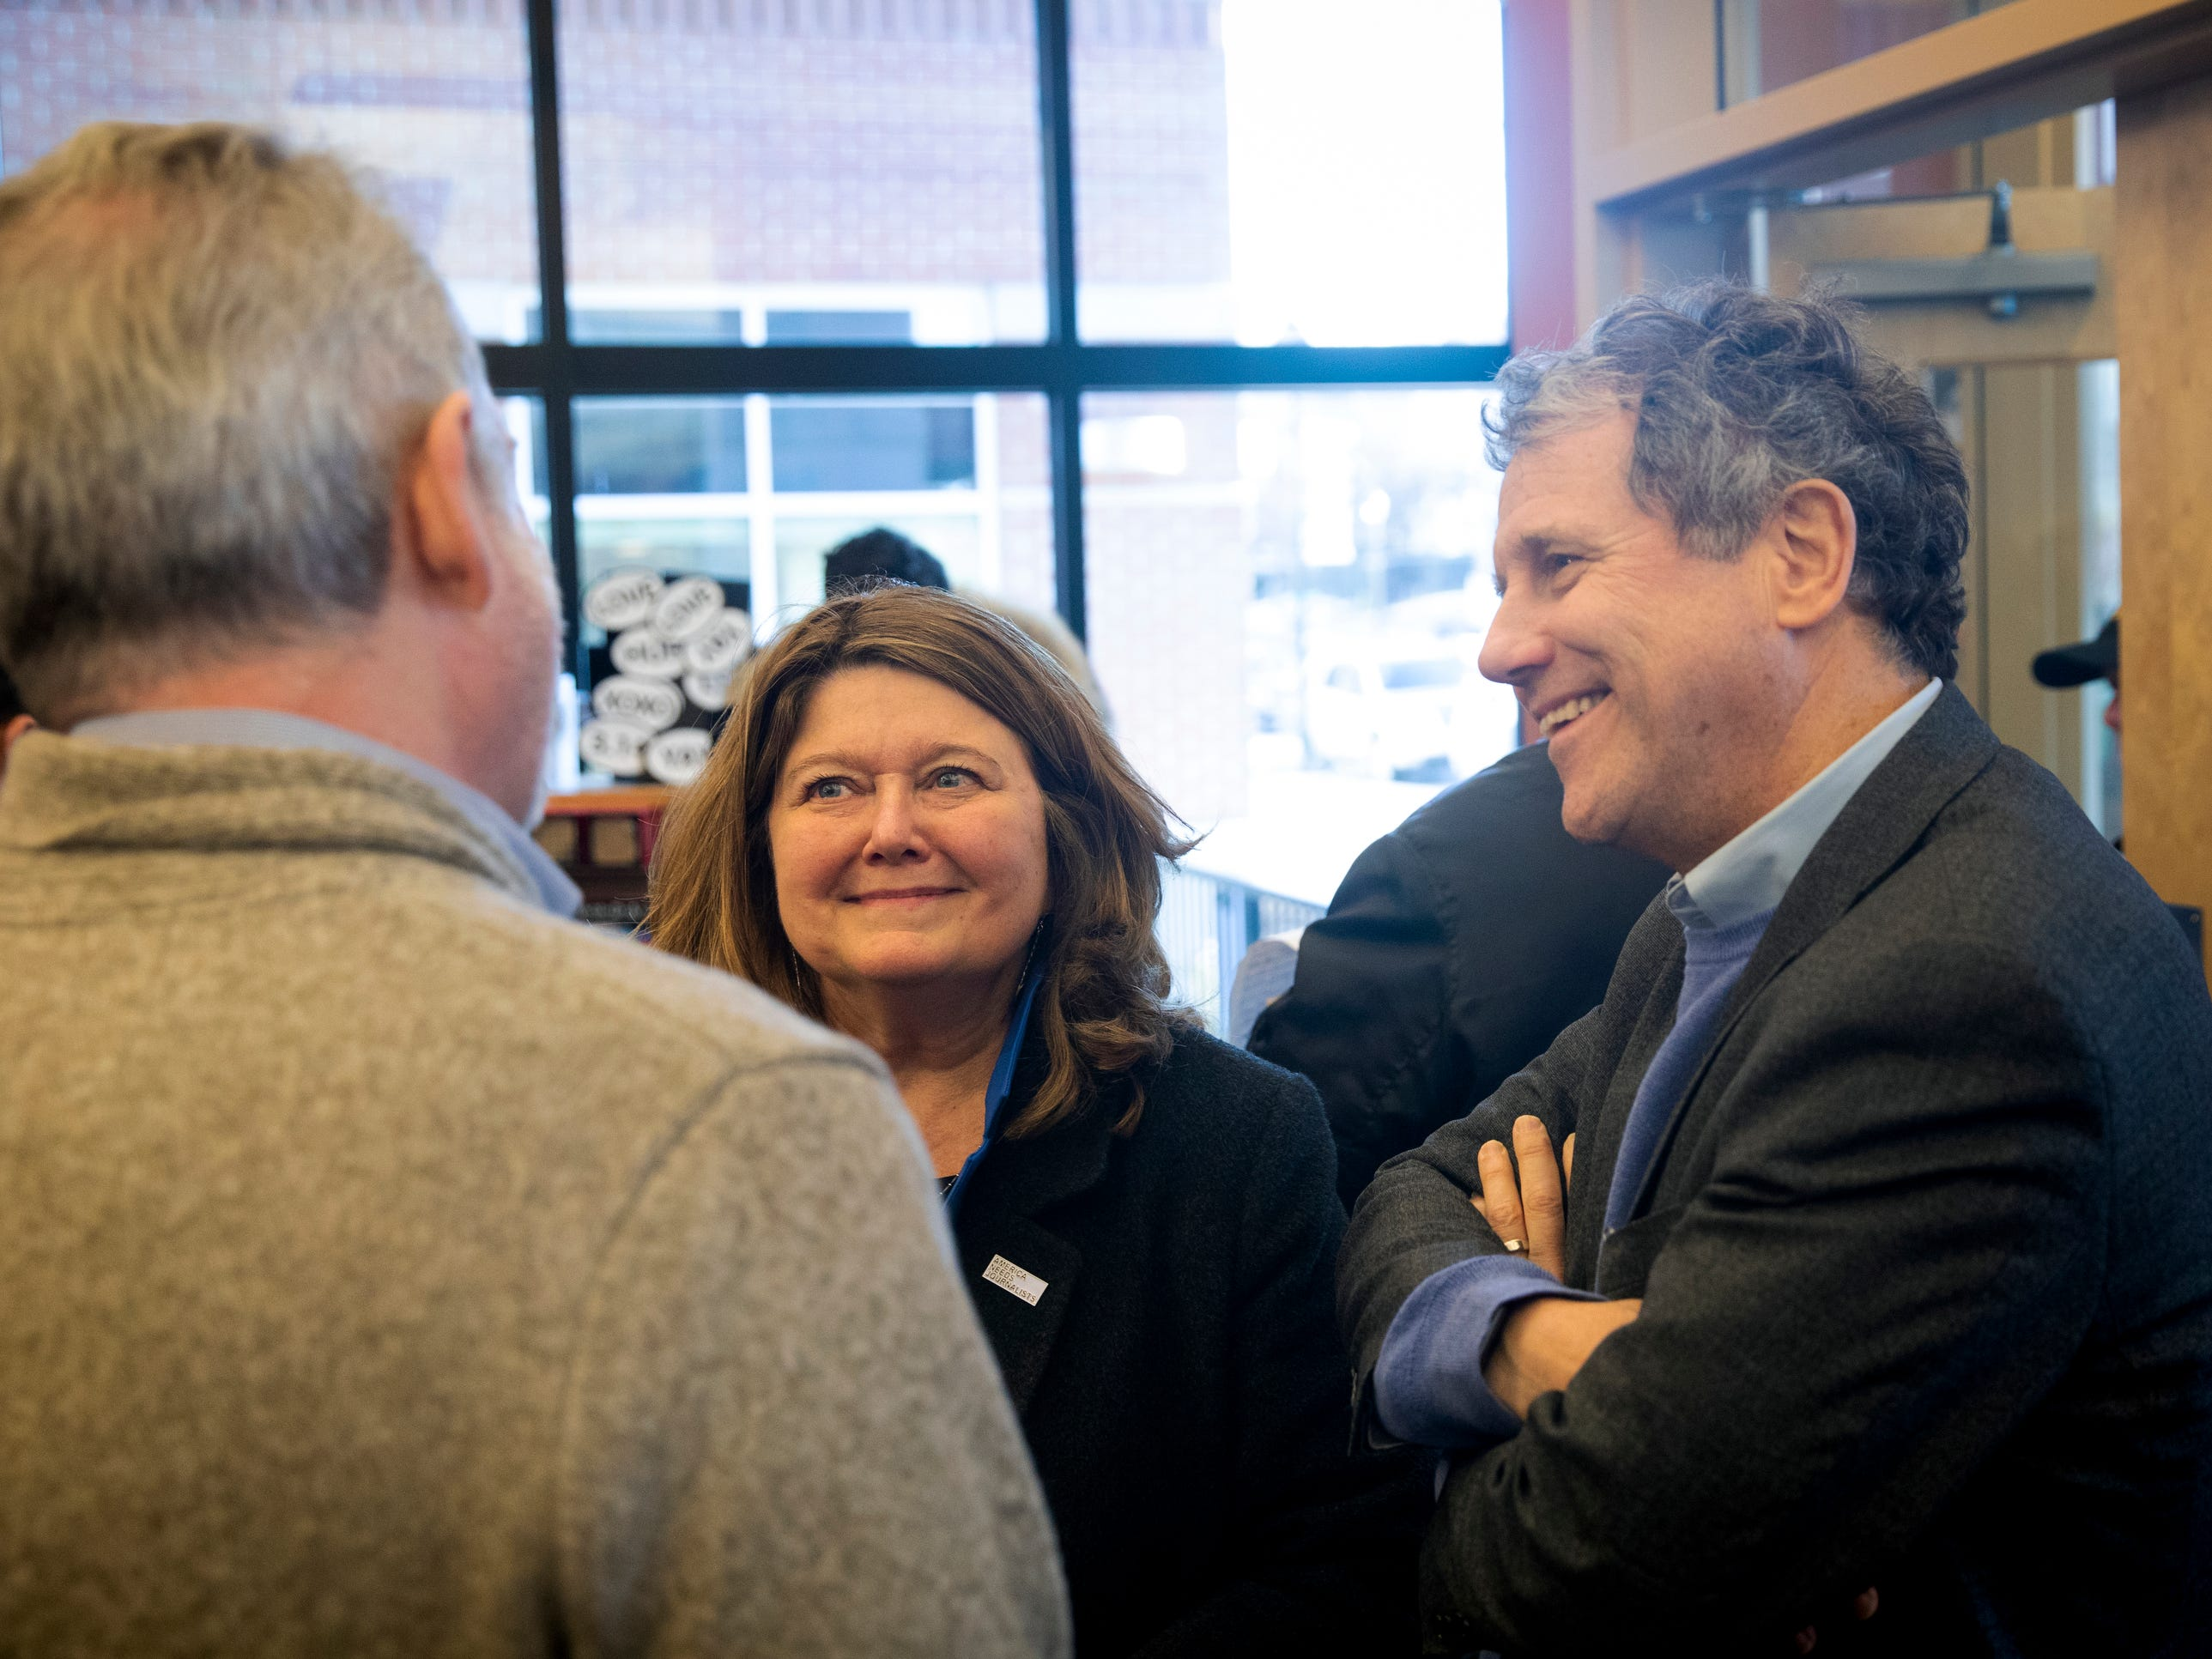 Michael Herrmann, the owner of Gibson's Bookstore, greets  Senator Sherrod Brown and his wife Connie Schultz before Brown does a meet and greet at Gibson's Bookstore in Concord, N.H. Saturday, February 9, 2019.